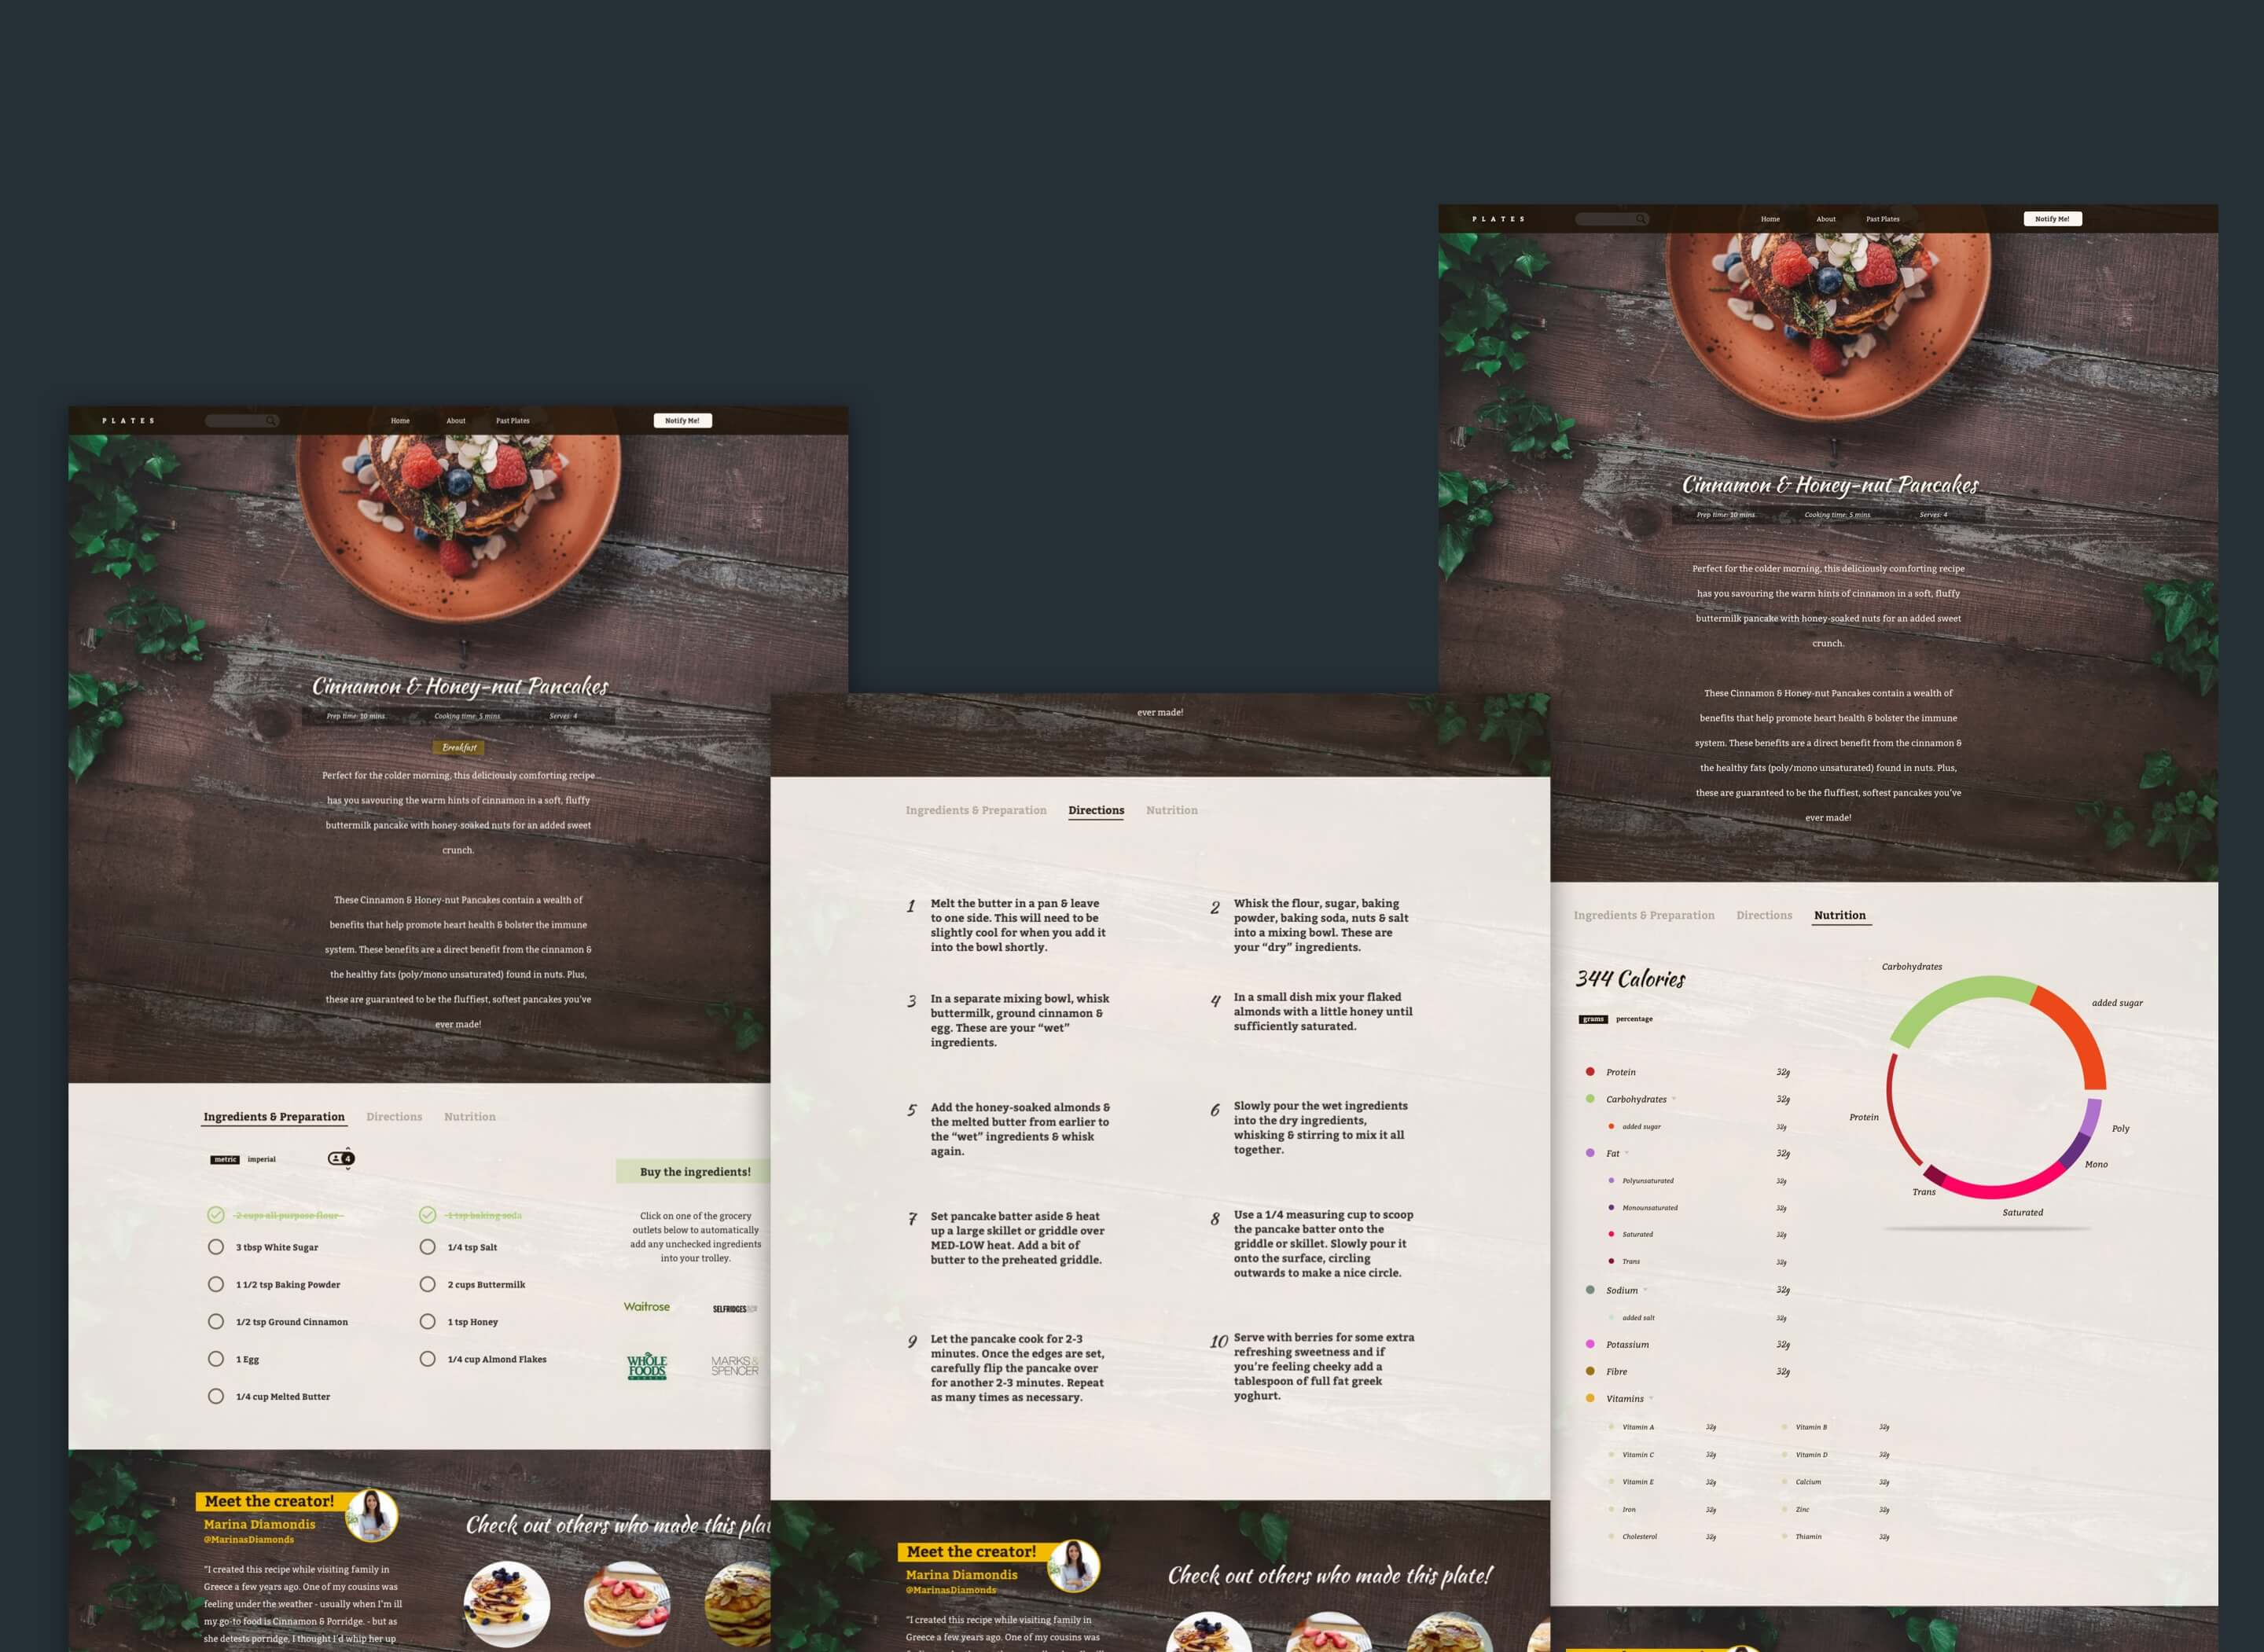 The view of the recipe information pages